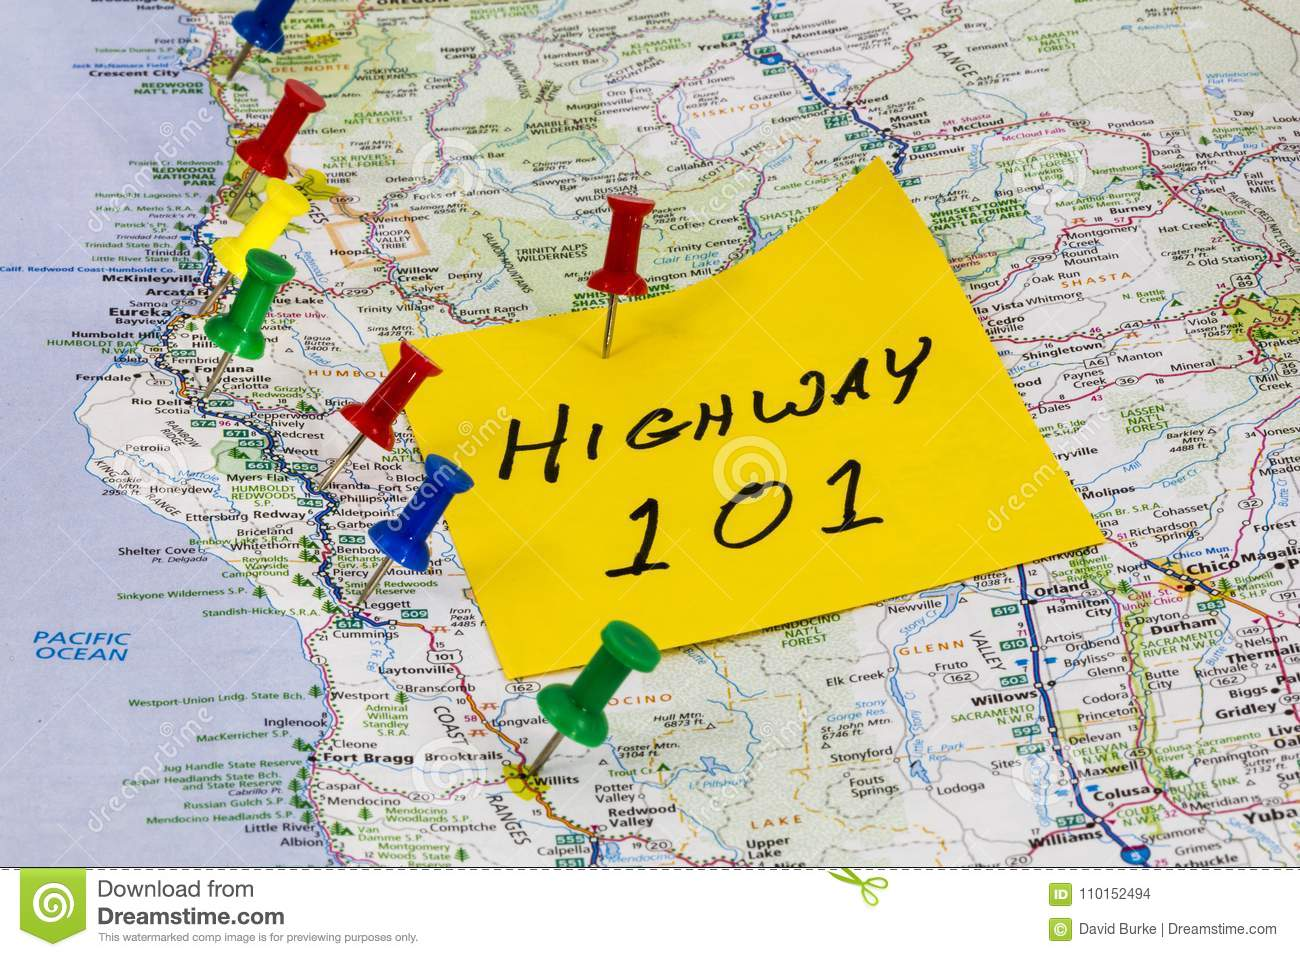 Highway 101 California Map.Highway 101 California Coastline Stock Photo Image Of Message